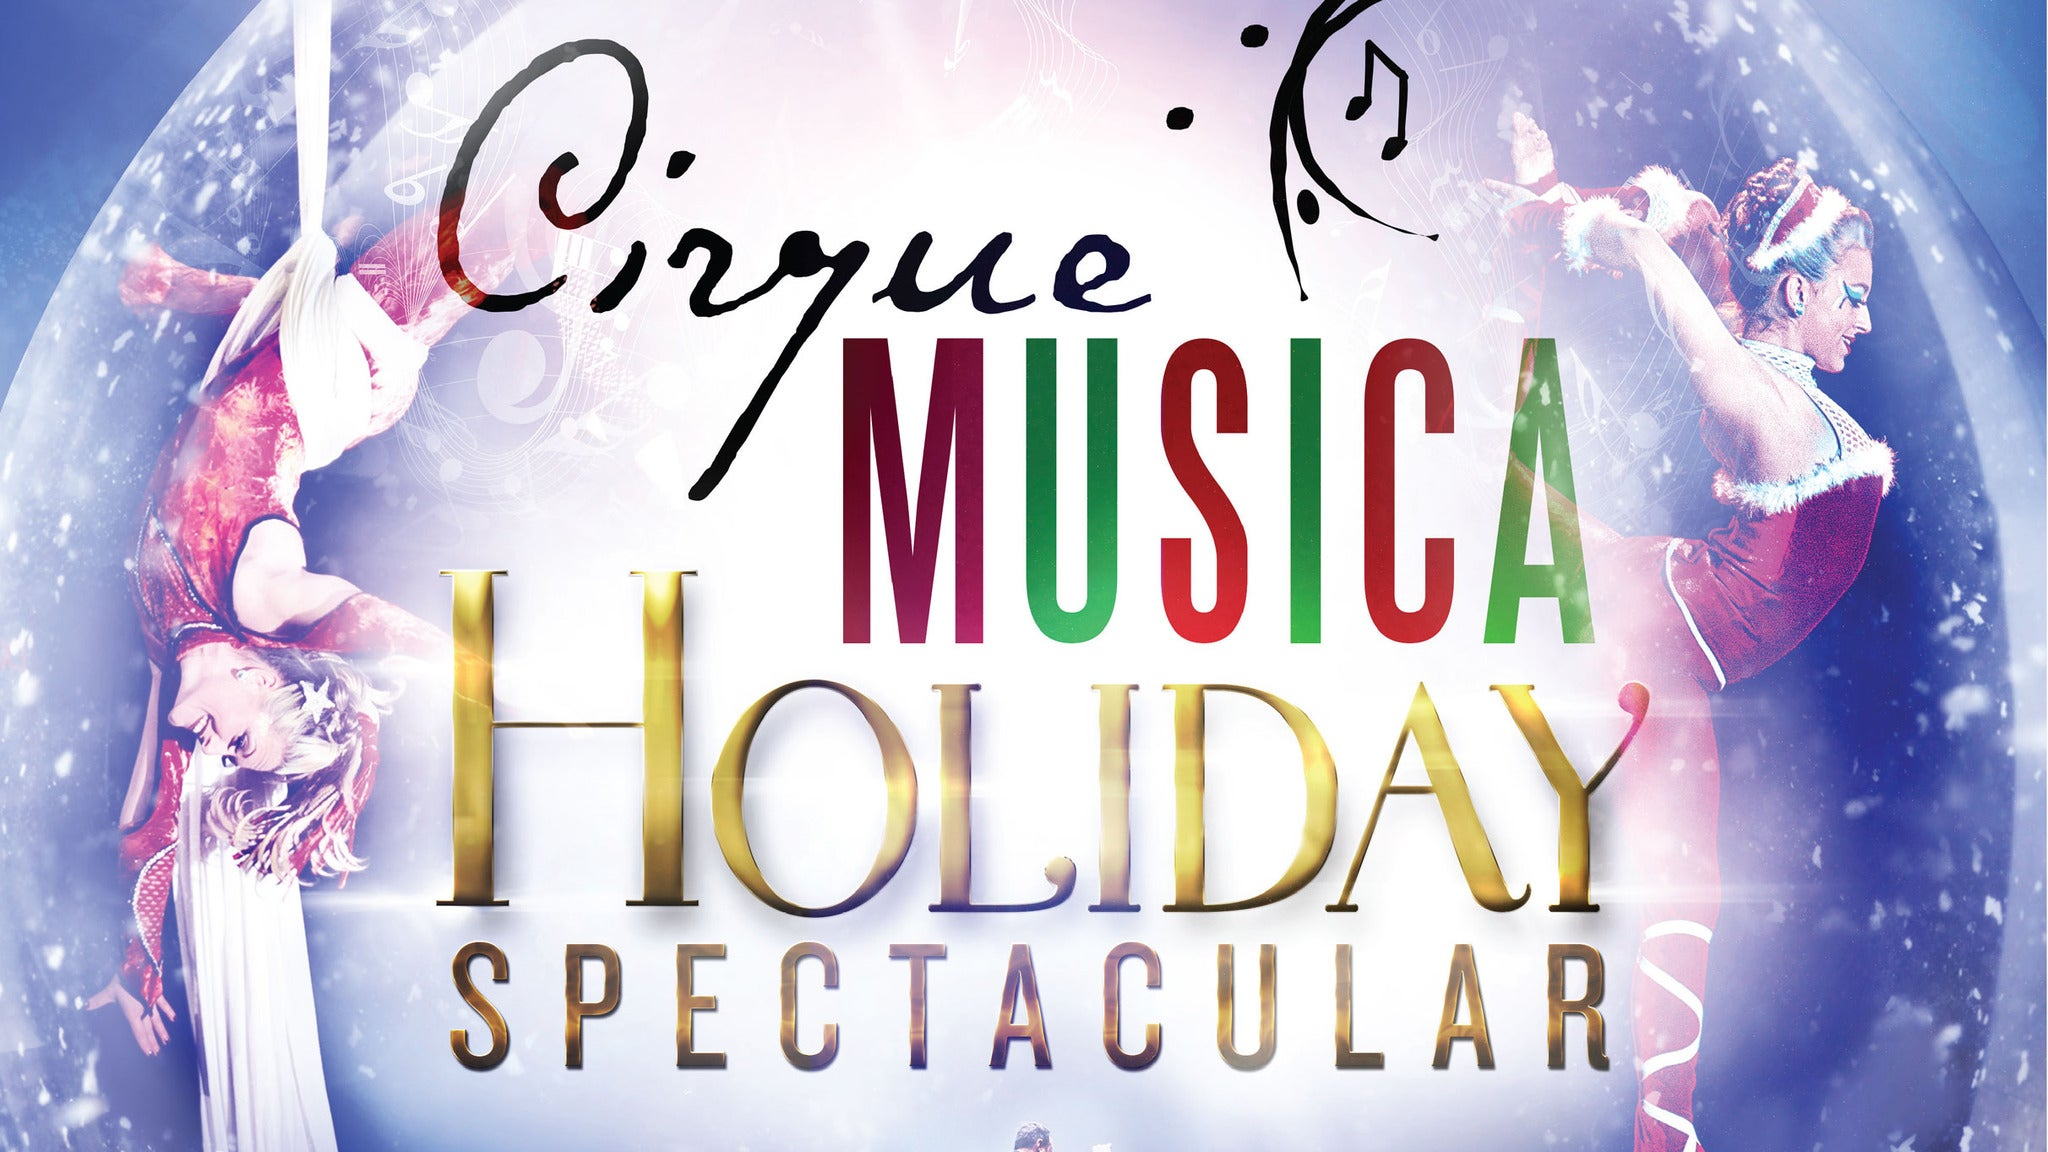 Cirque Musica Holiday Spectacular at Hard Rock Live